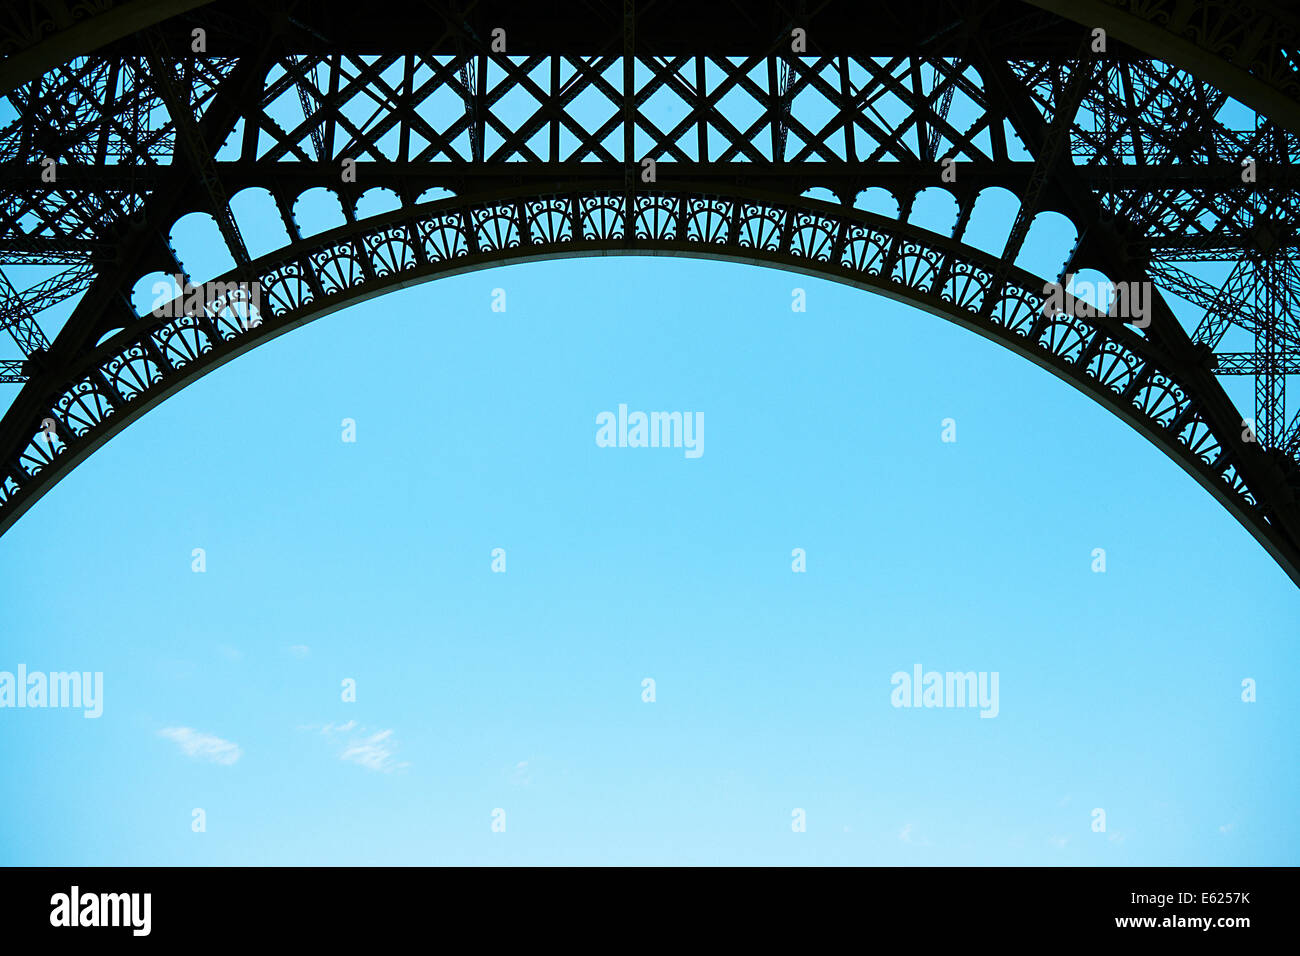 Eiffel Tower Paris close up of metalwork - Stock Image